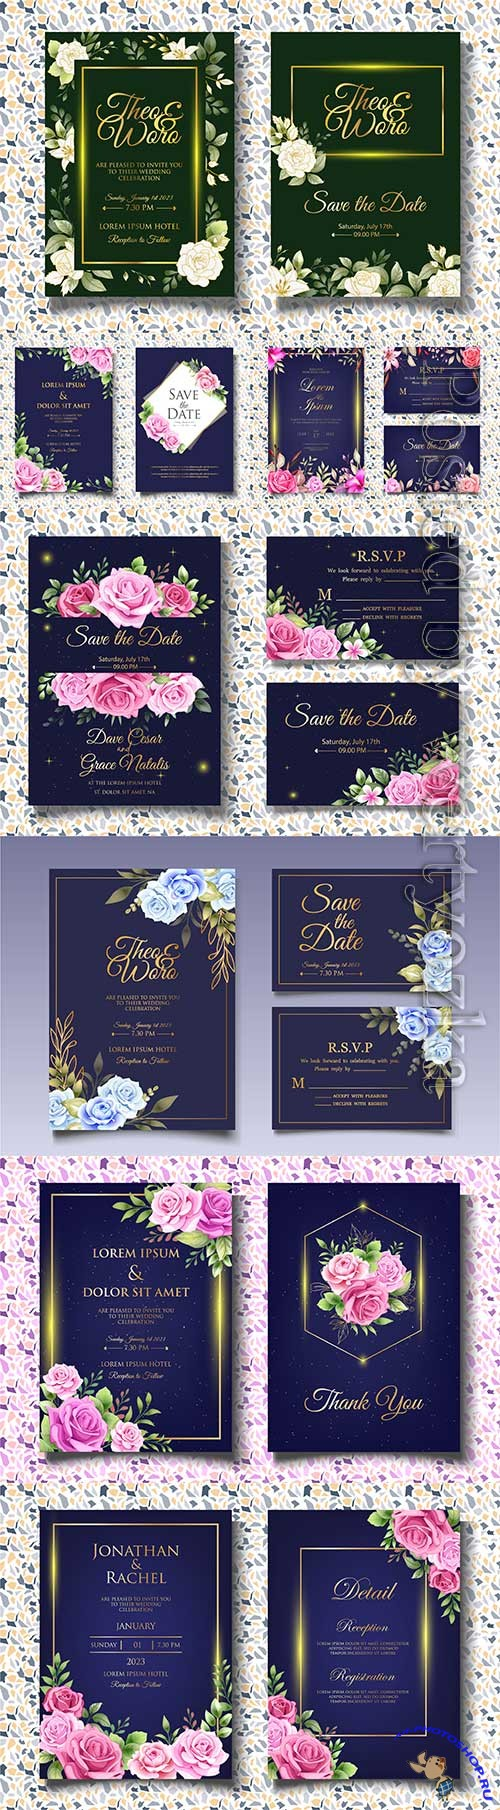 Beautiful invitation wedding with roses